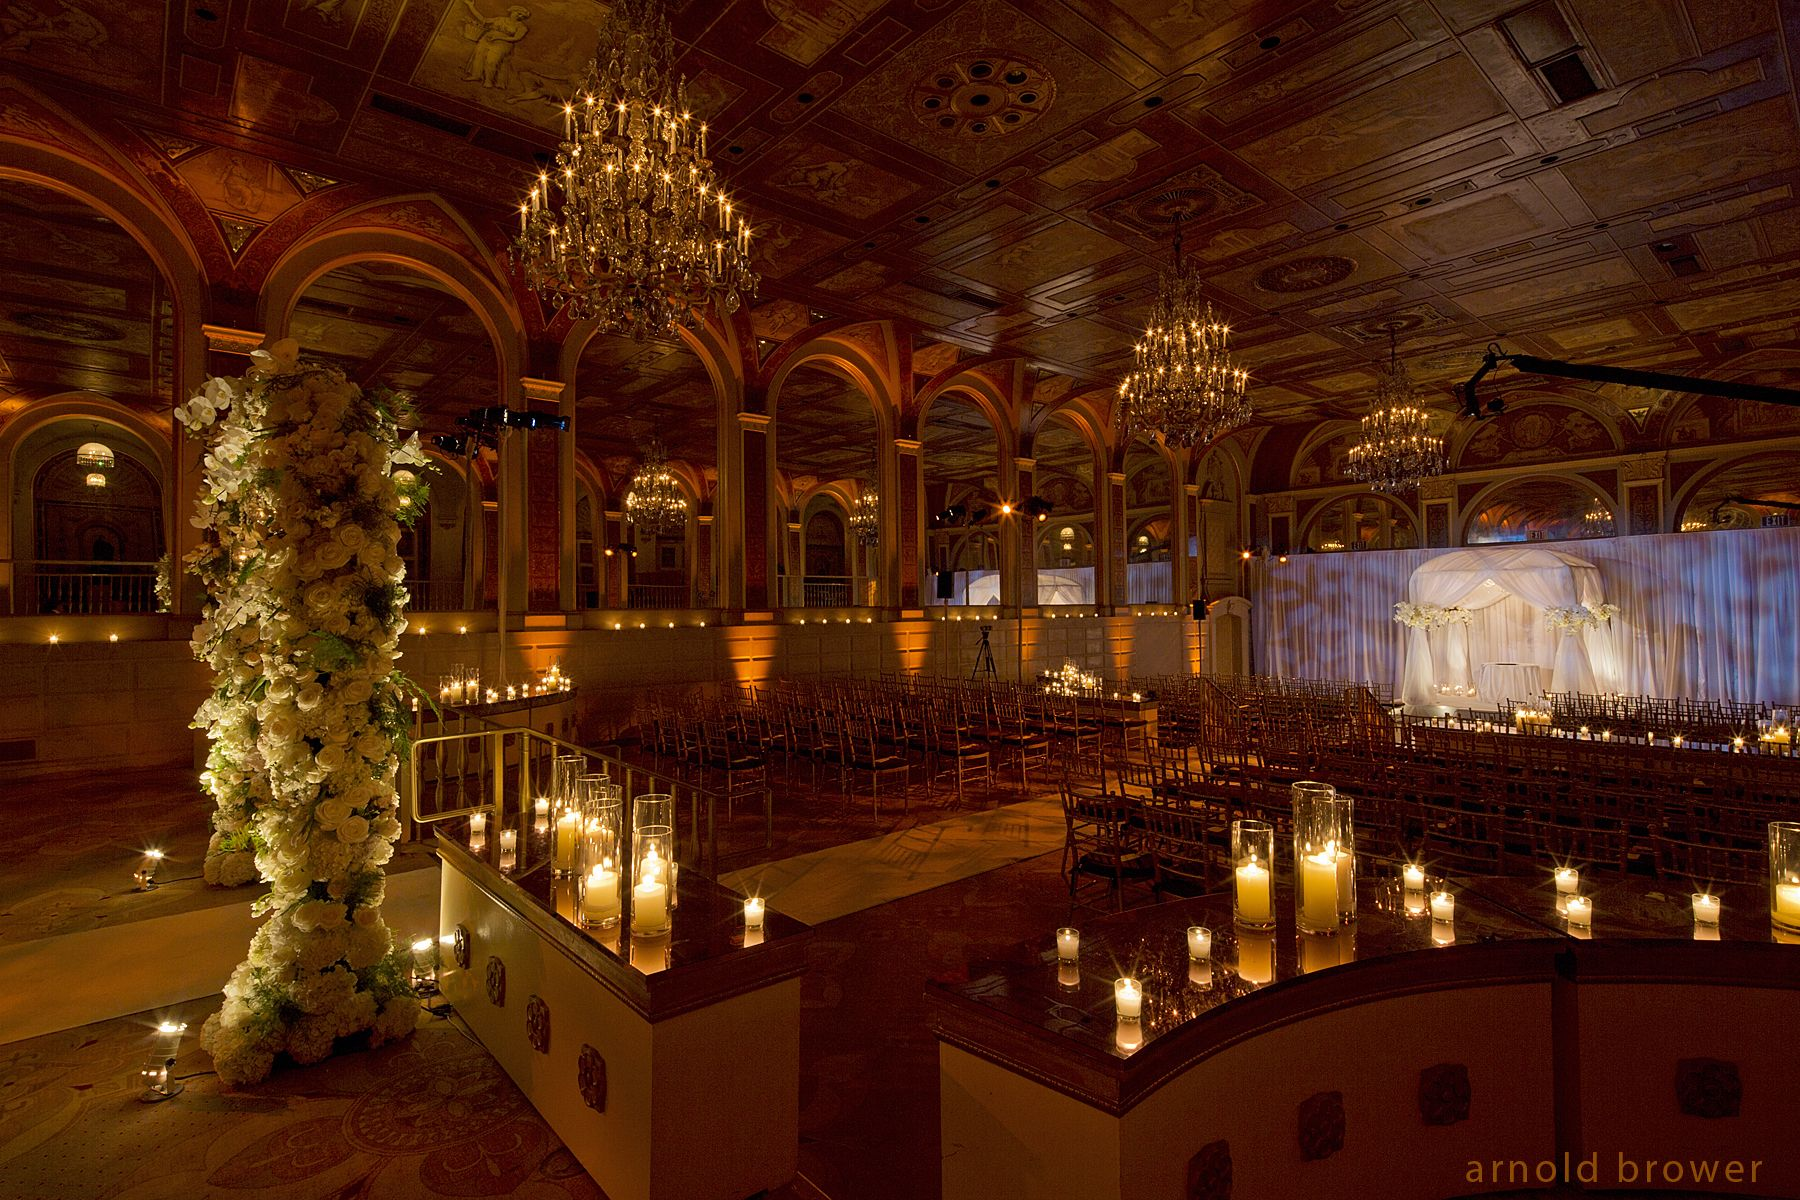 The Ceremony Wedding Design at the Plaza Hotel (With